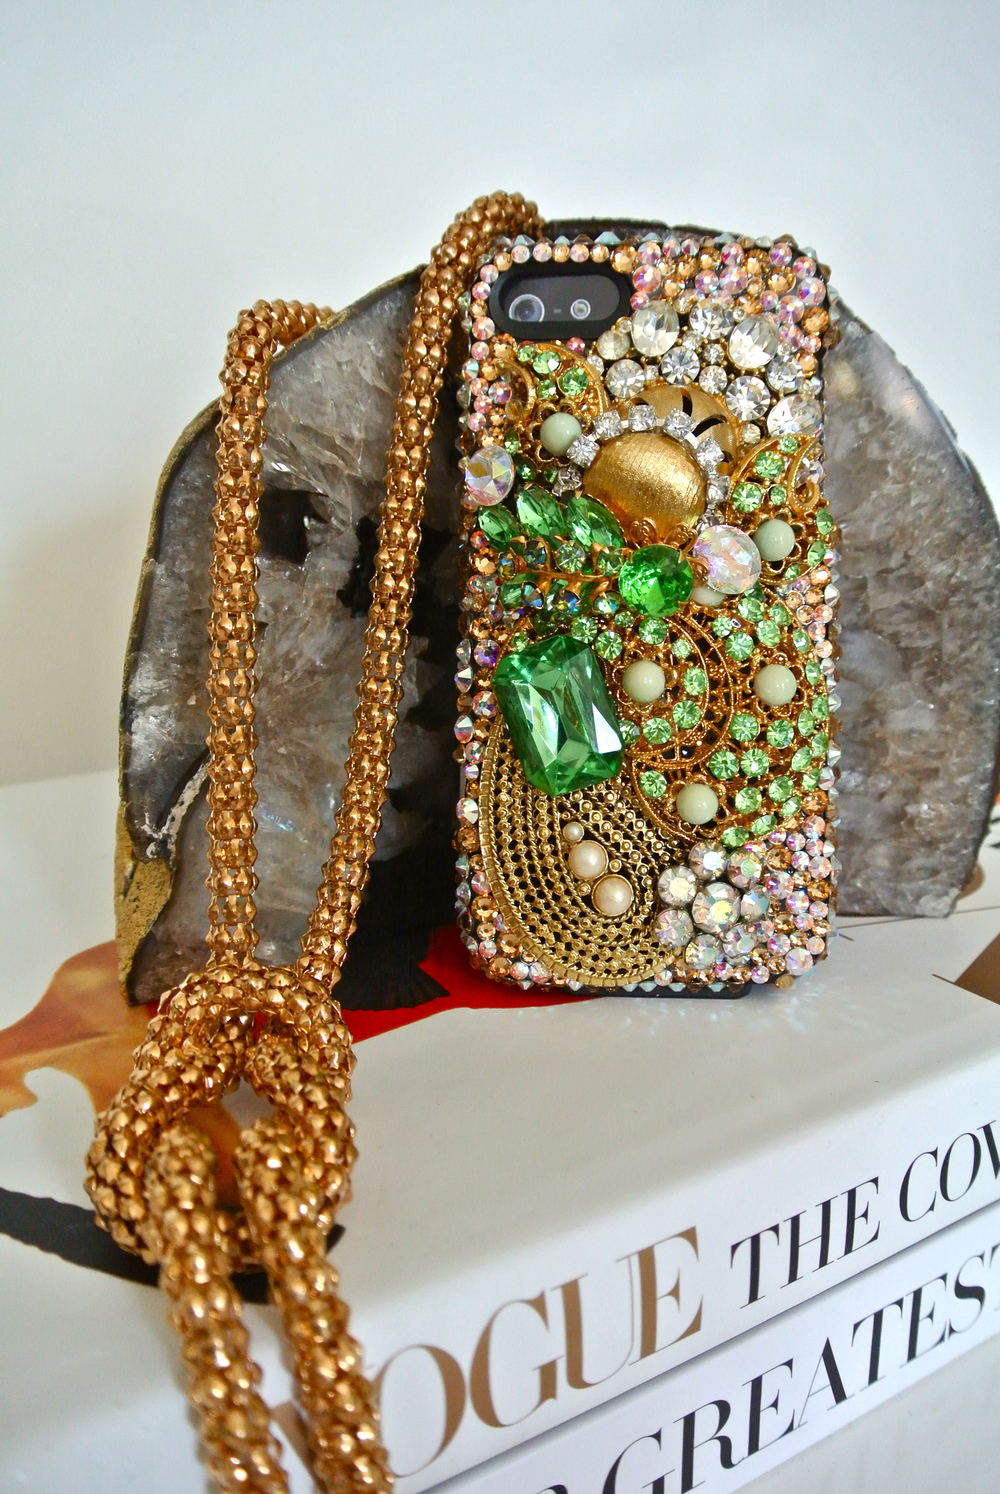 Embellished-iPhone5-case-bling-ARLETA-4.9.13.jpg